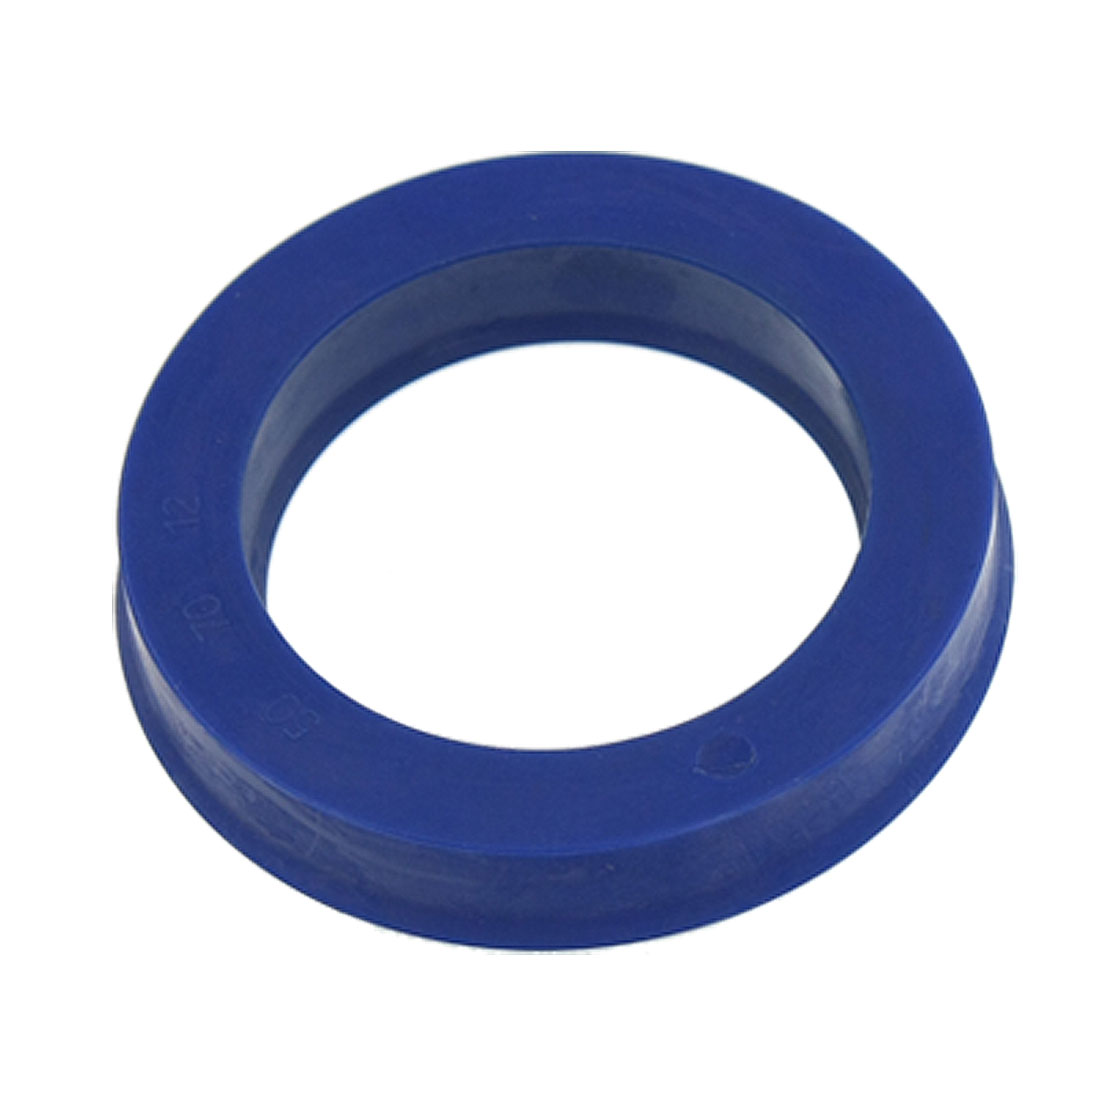 50mm x 70mm x 12mm Blue PU Polyurethane Hydraulic Oil Seal Ring Gasket